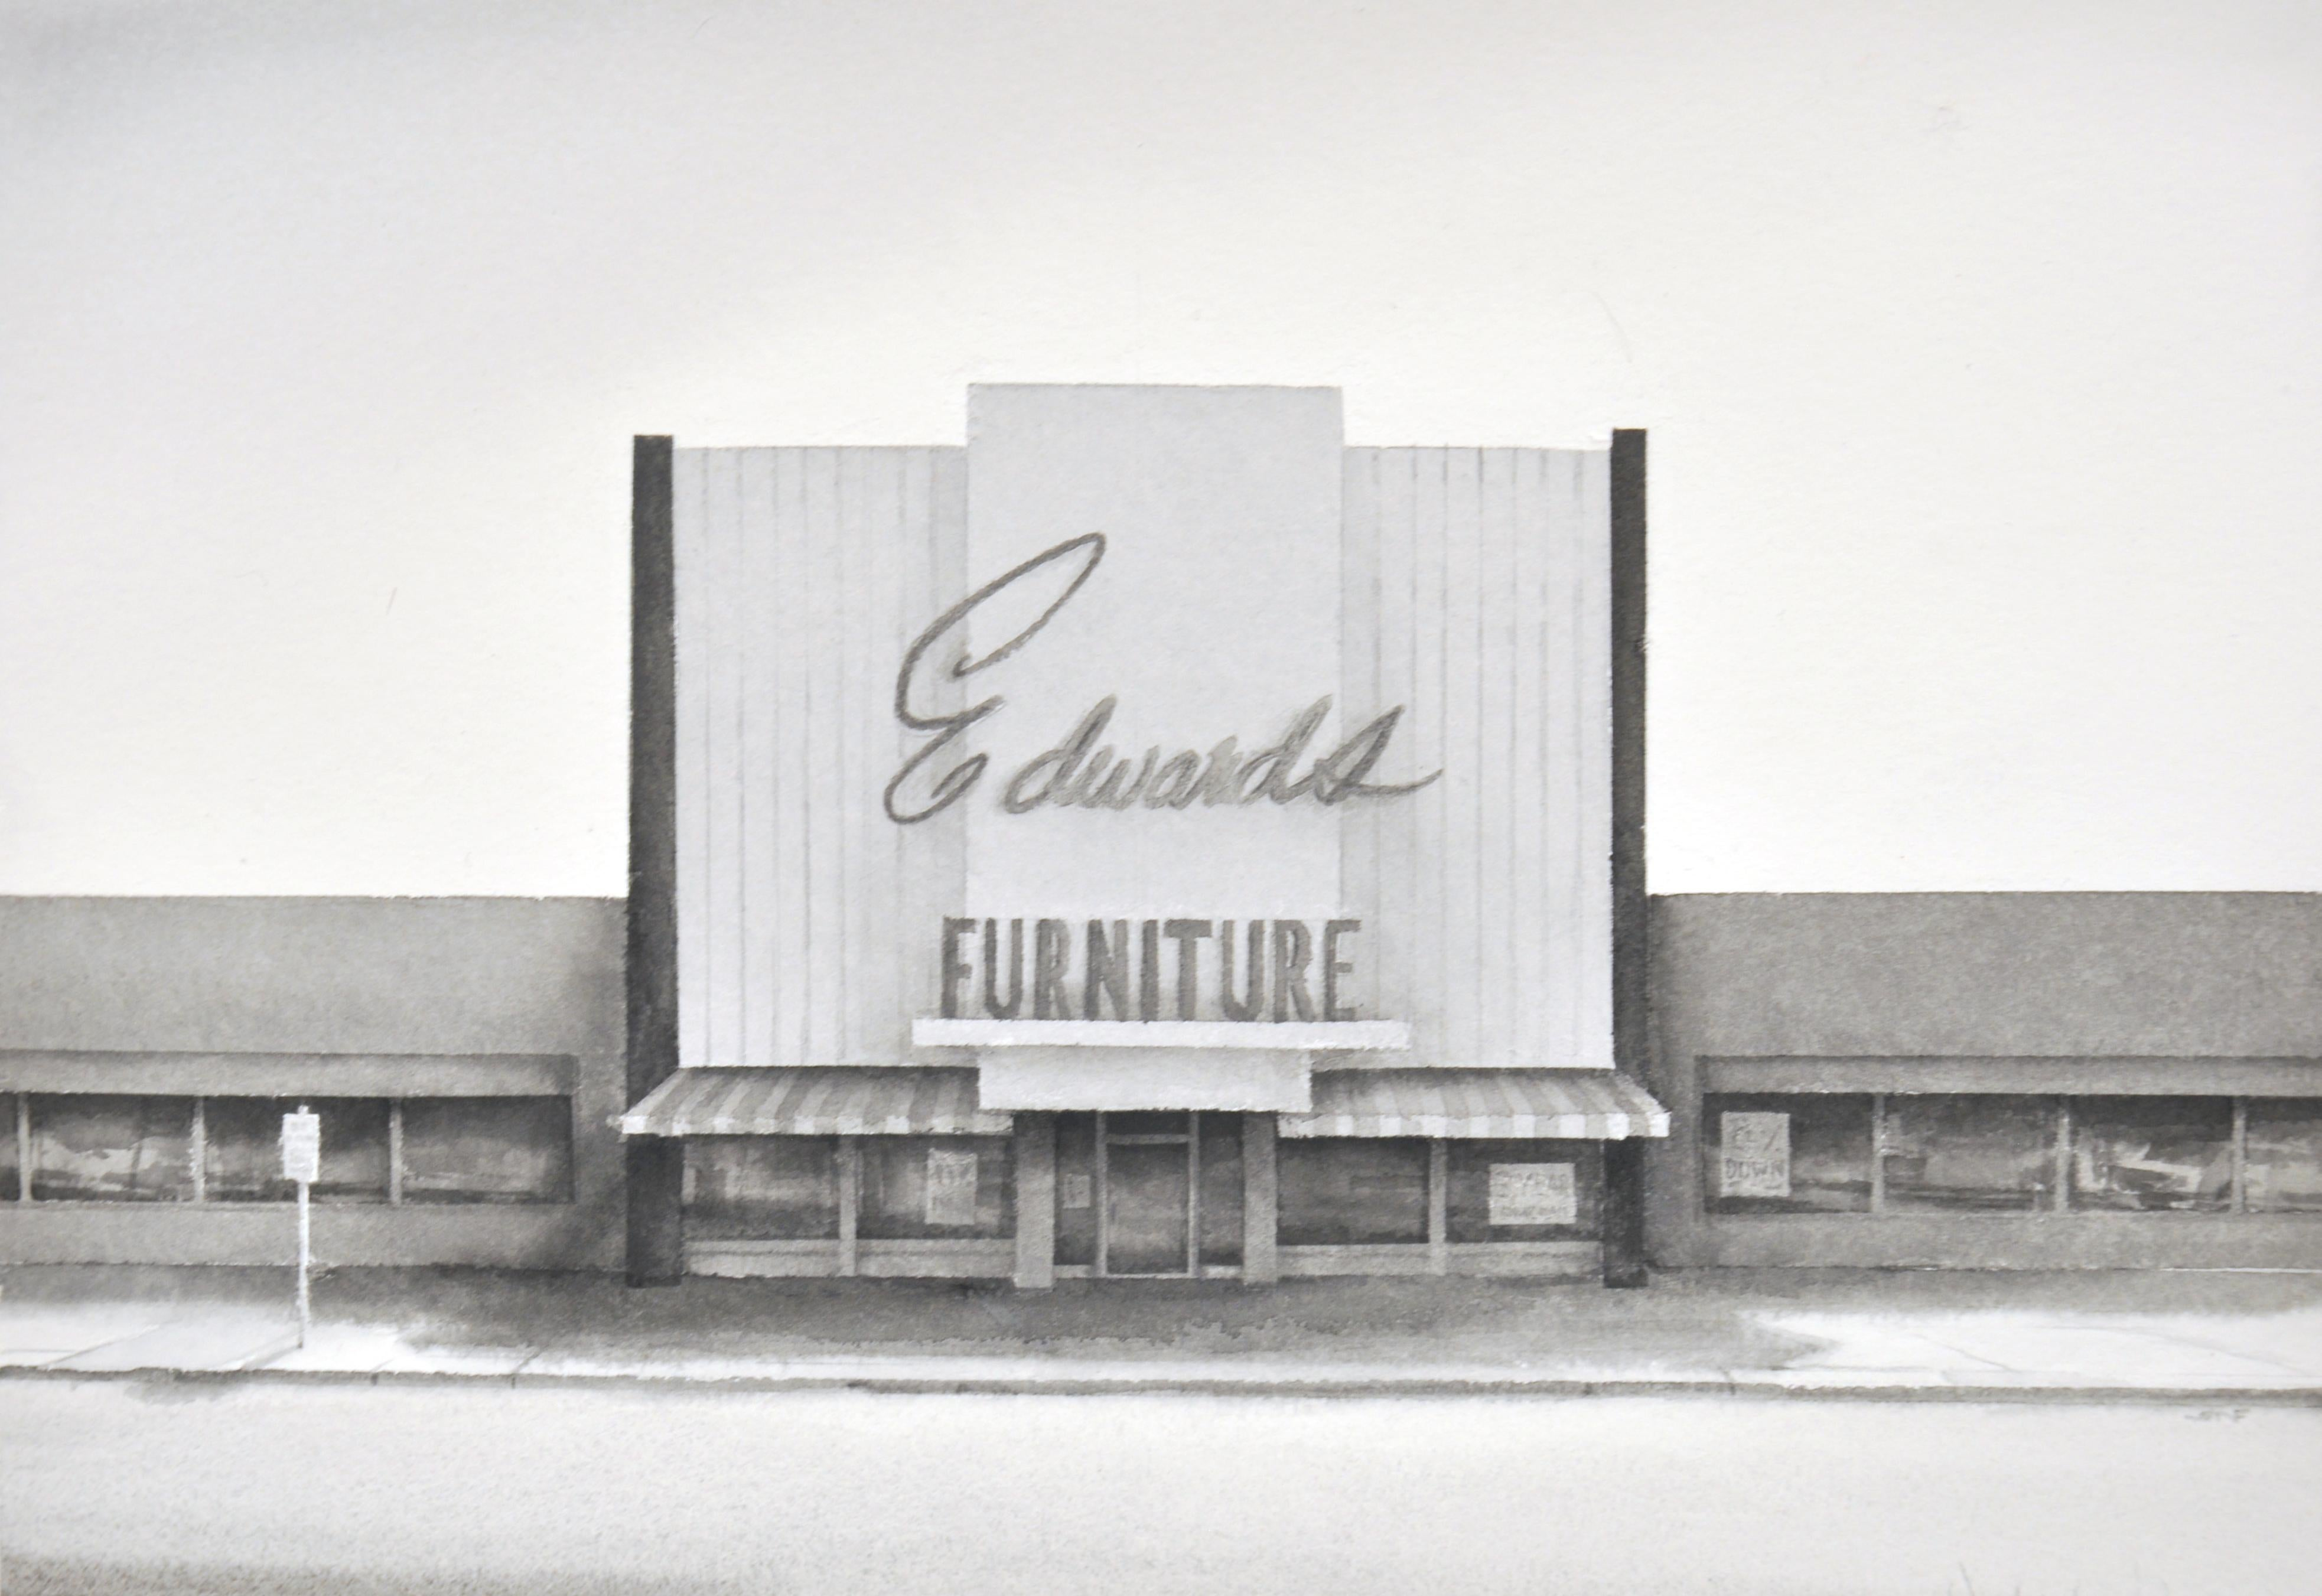 Edward's (Photo-Realist Black & White Watercolor Painting of Retro Store)